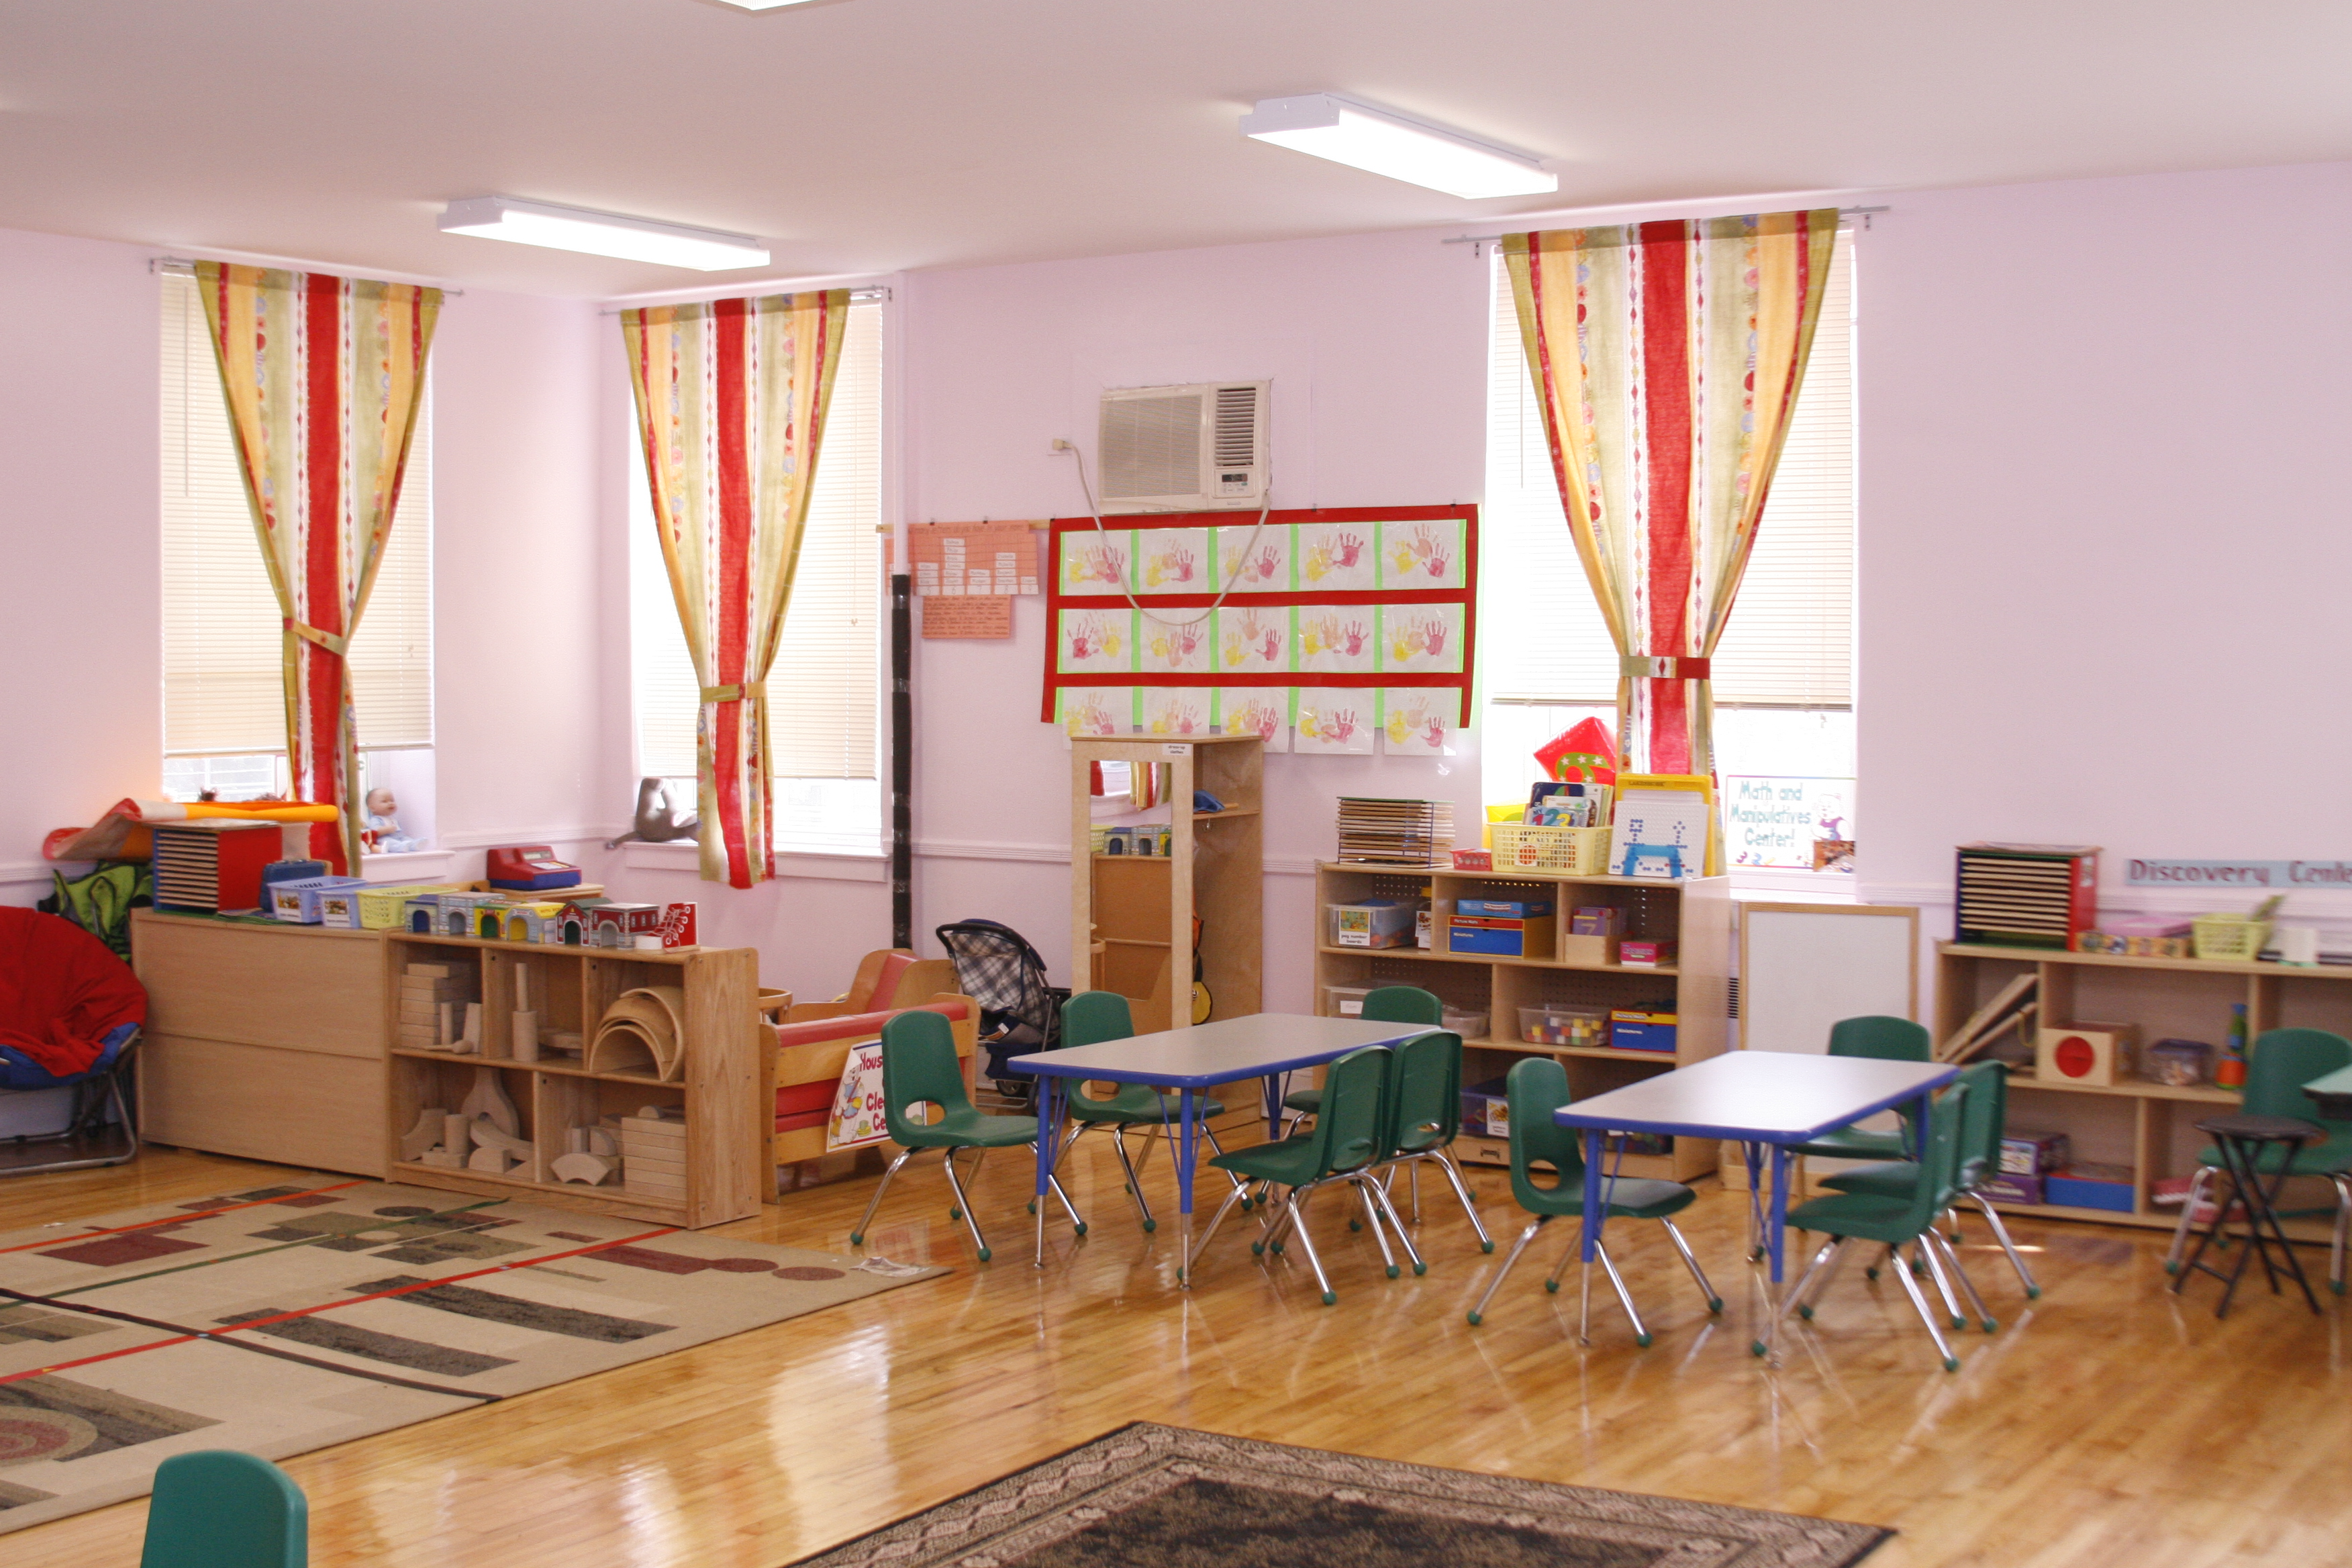 Bambi Day Care Center Brooklyn Ny Tips On Choosing A